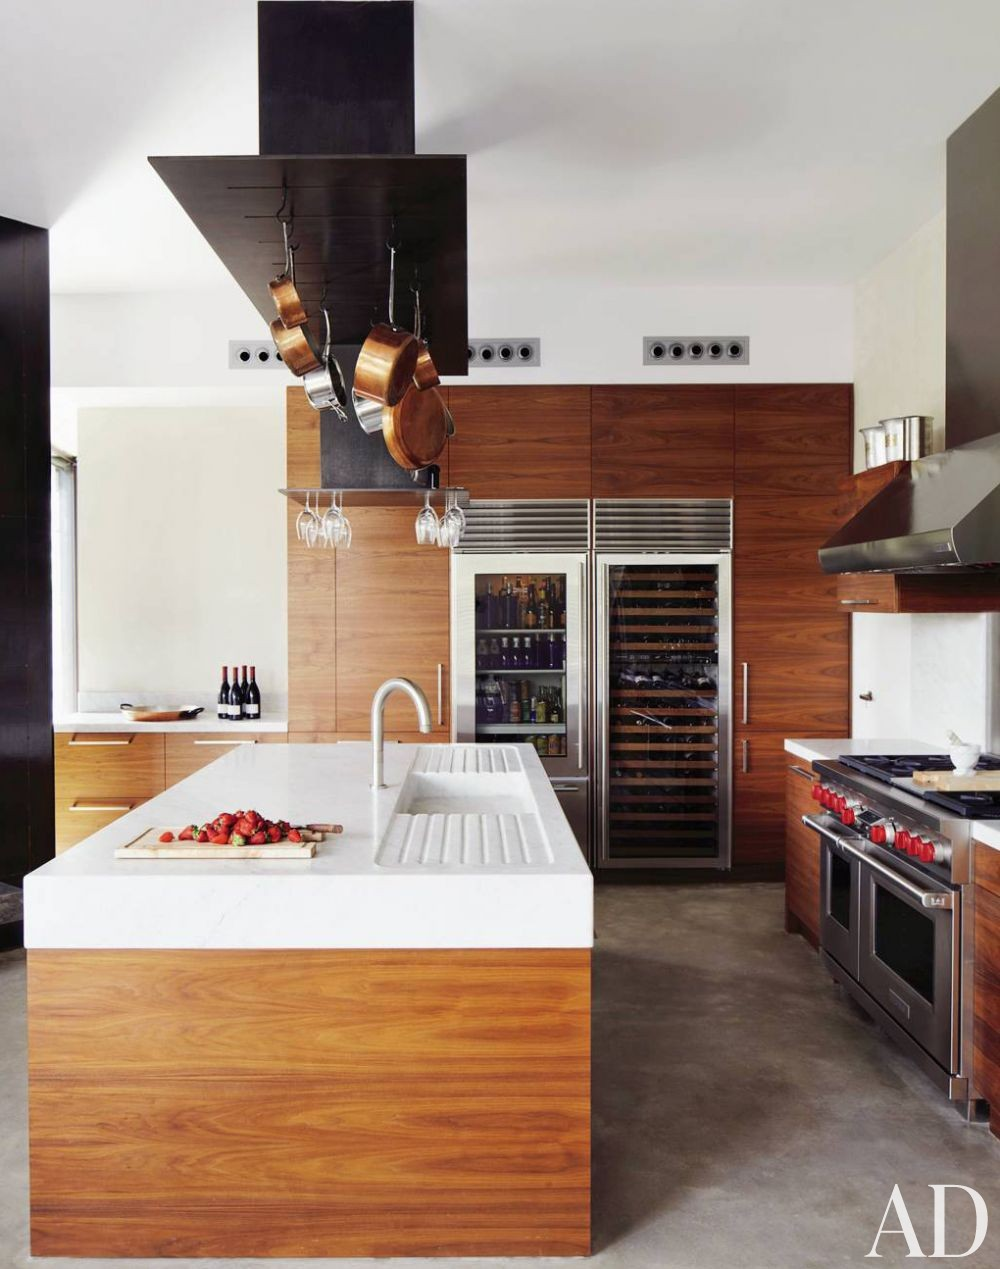 Contemporary Kitchen and Olson Kundig Architects in Sitges, Spain